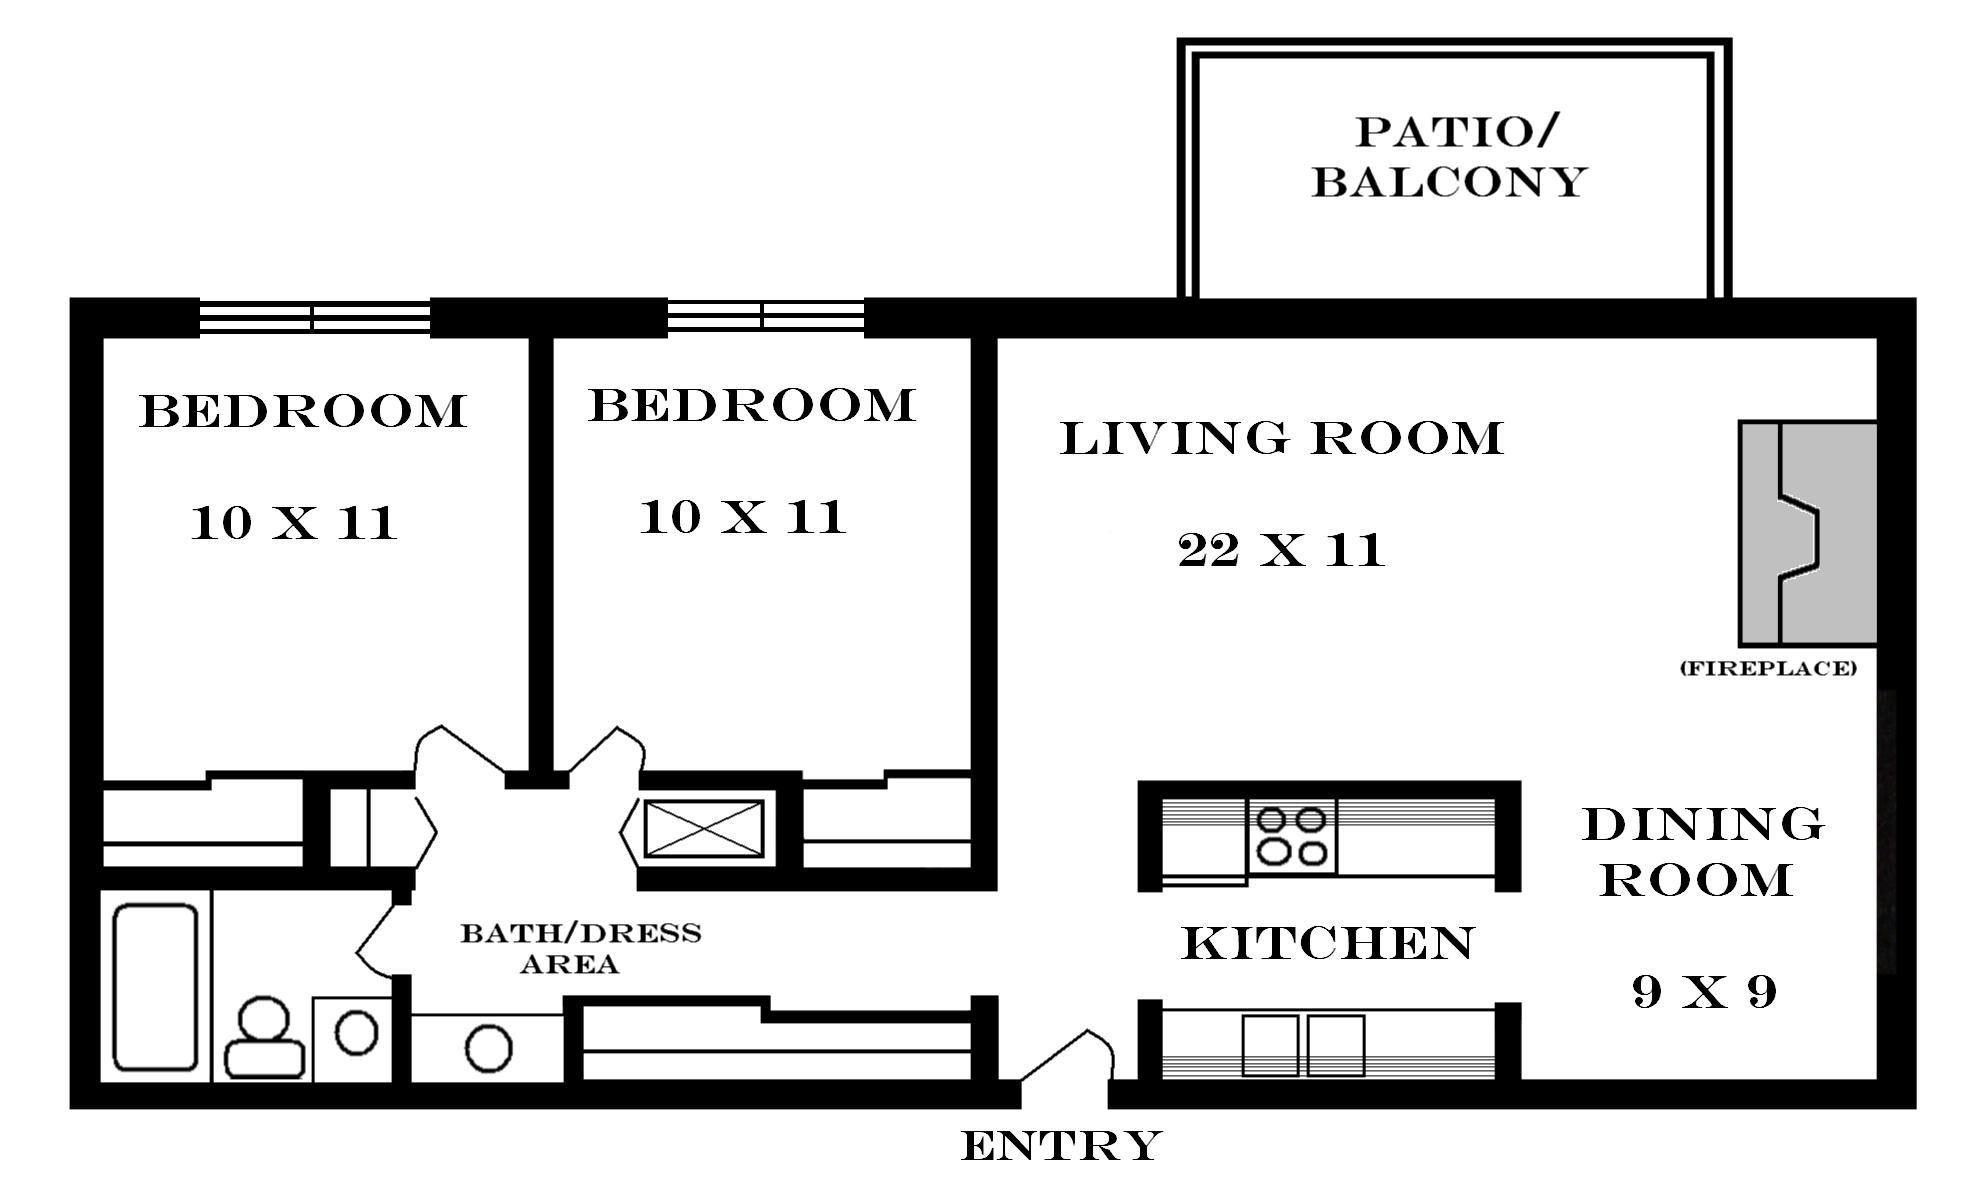 Small house floor plans 2 bedrooms 900 tiny houses for Plan of two bedroom flat